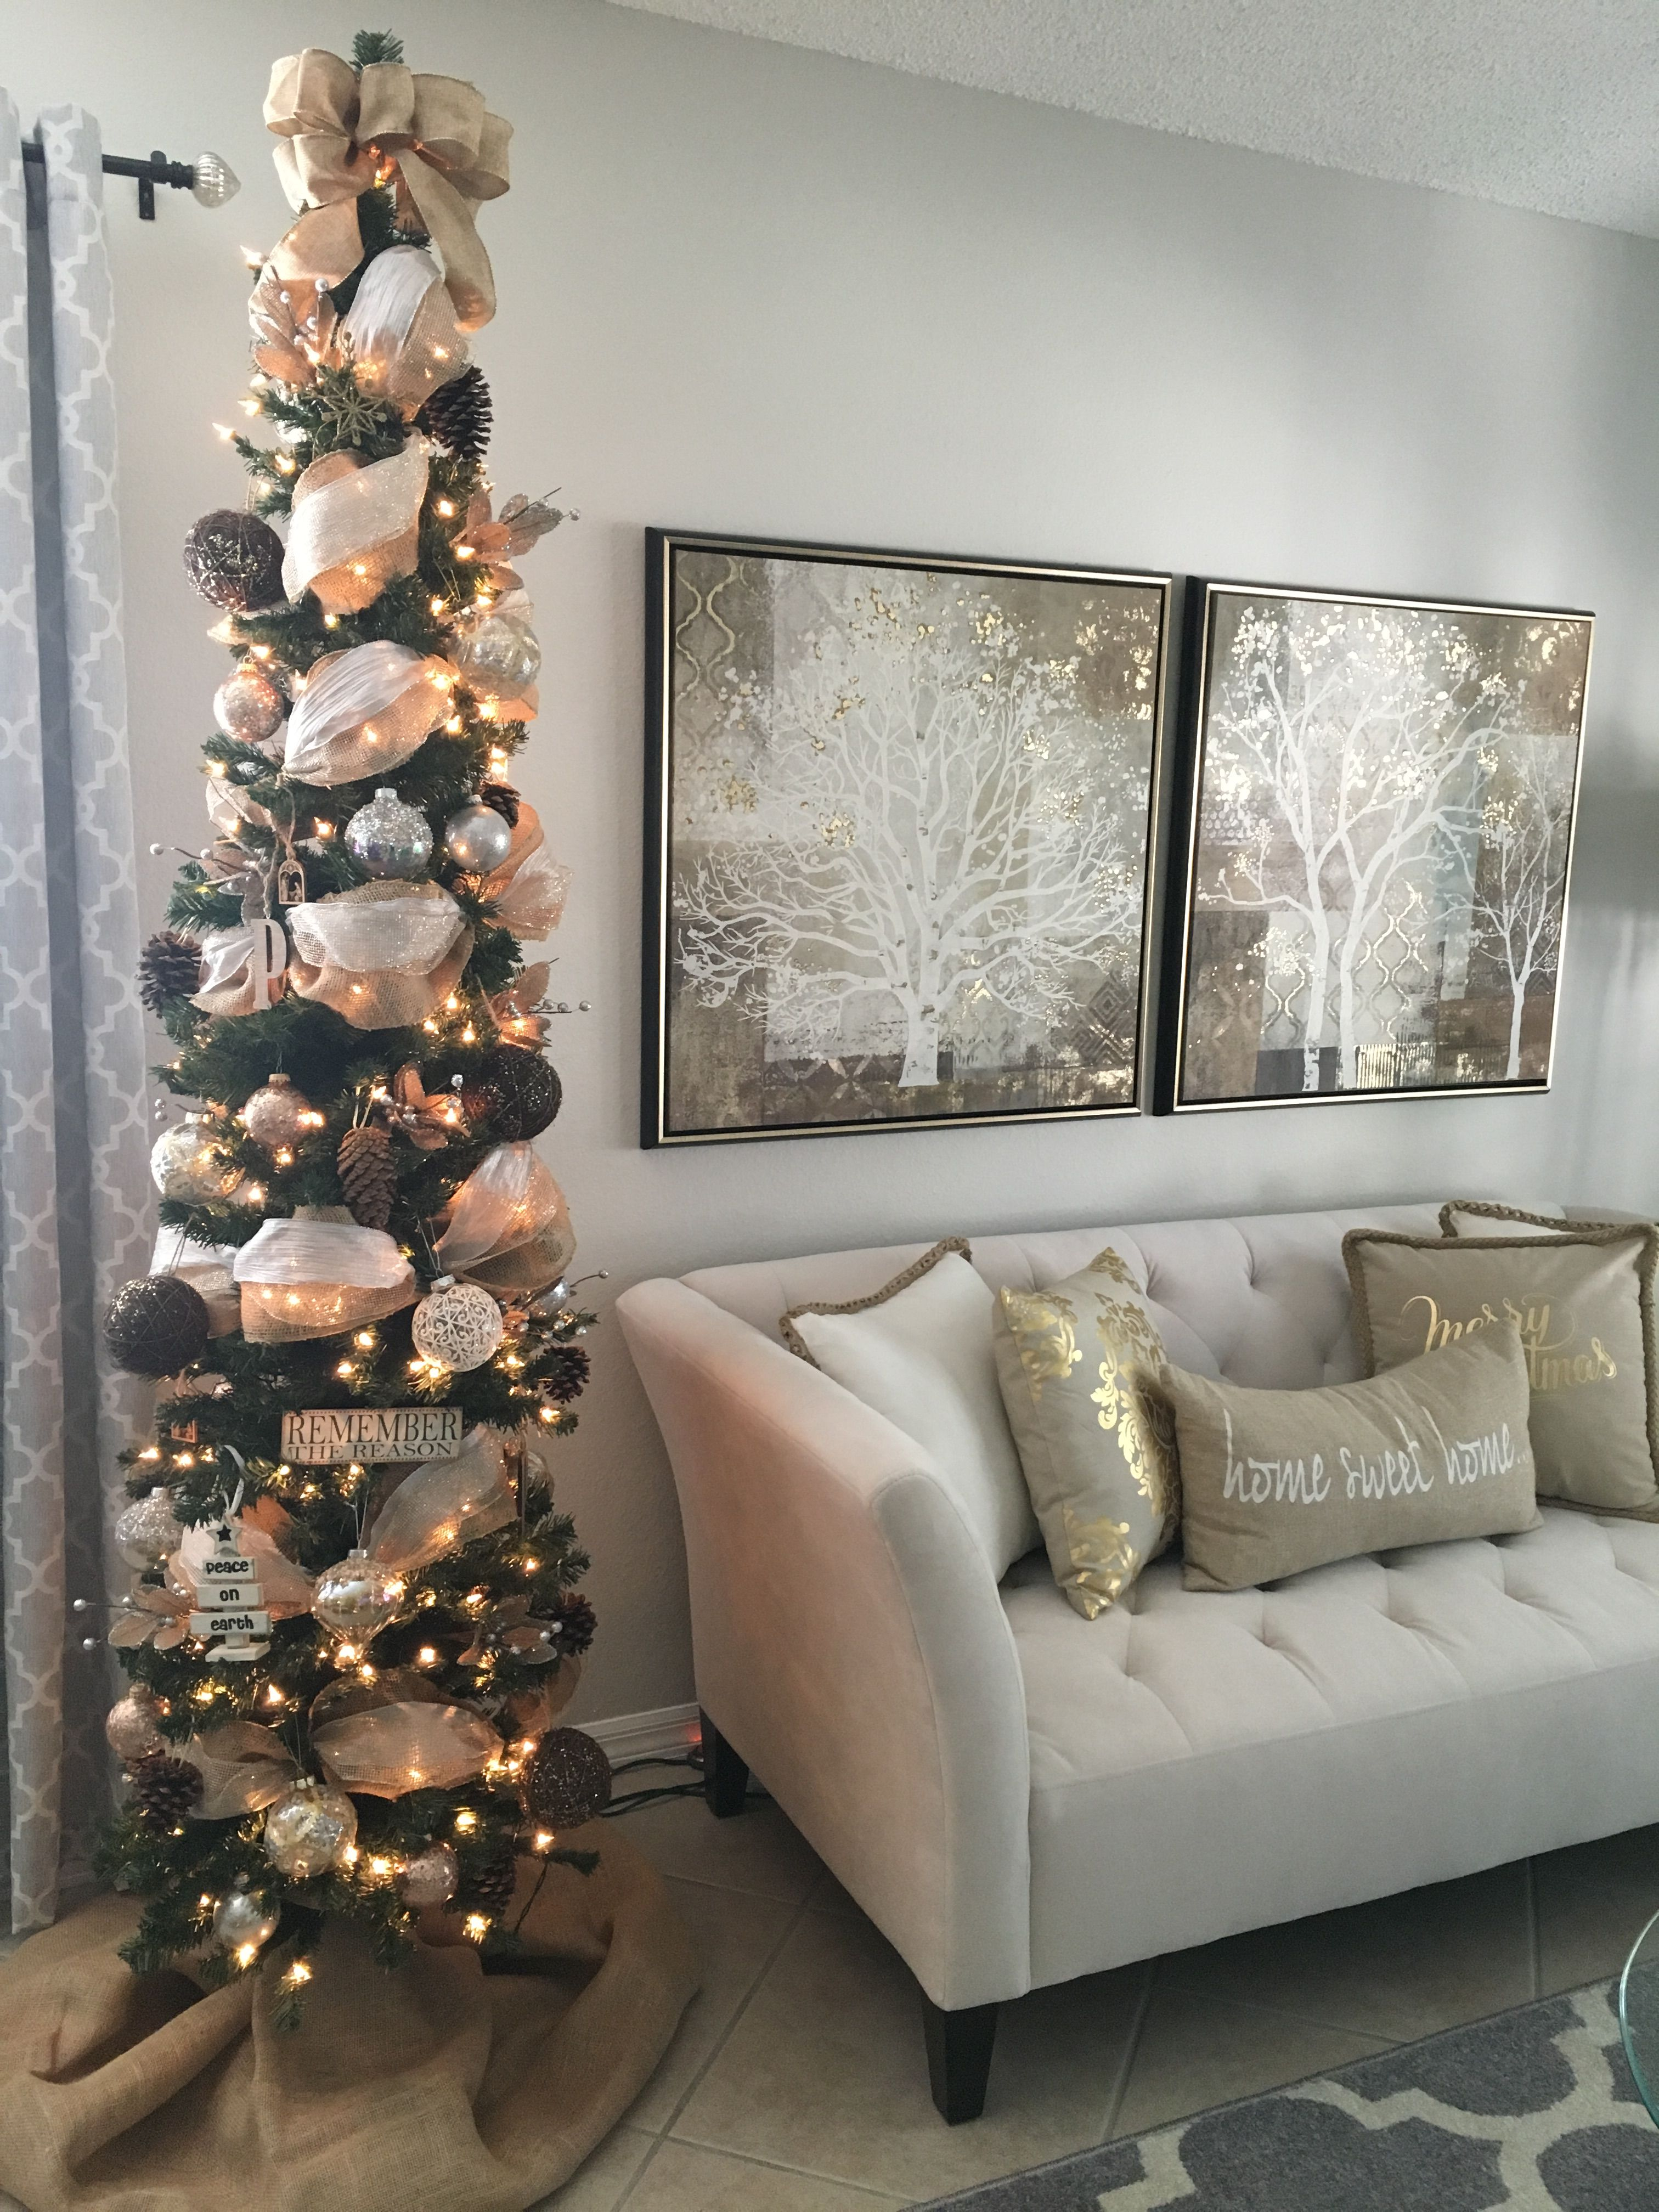 Pencil Christmas Tree Burlap, Gold Mesh And Silver Ribbons With